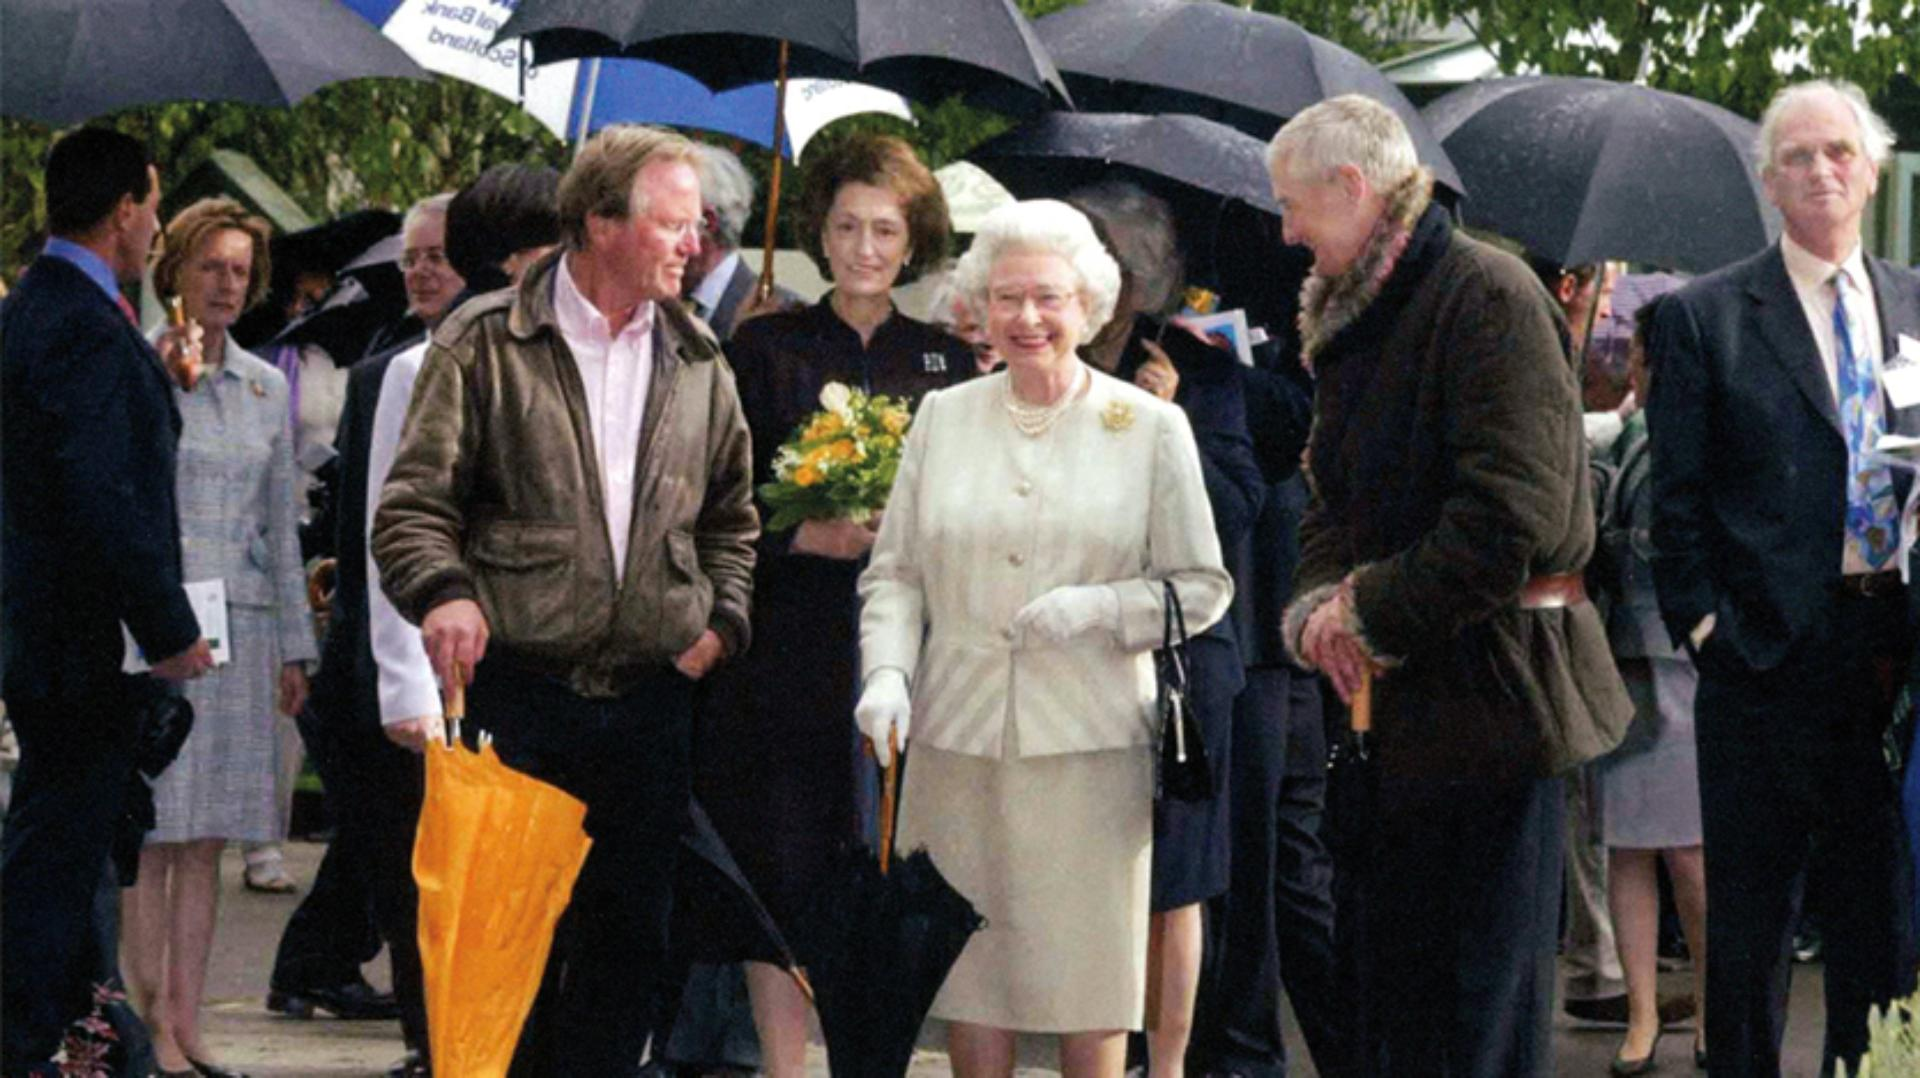 Queen Elizabeth II at The Chelsea Flower Show with James Dyson and Charles Moore